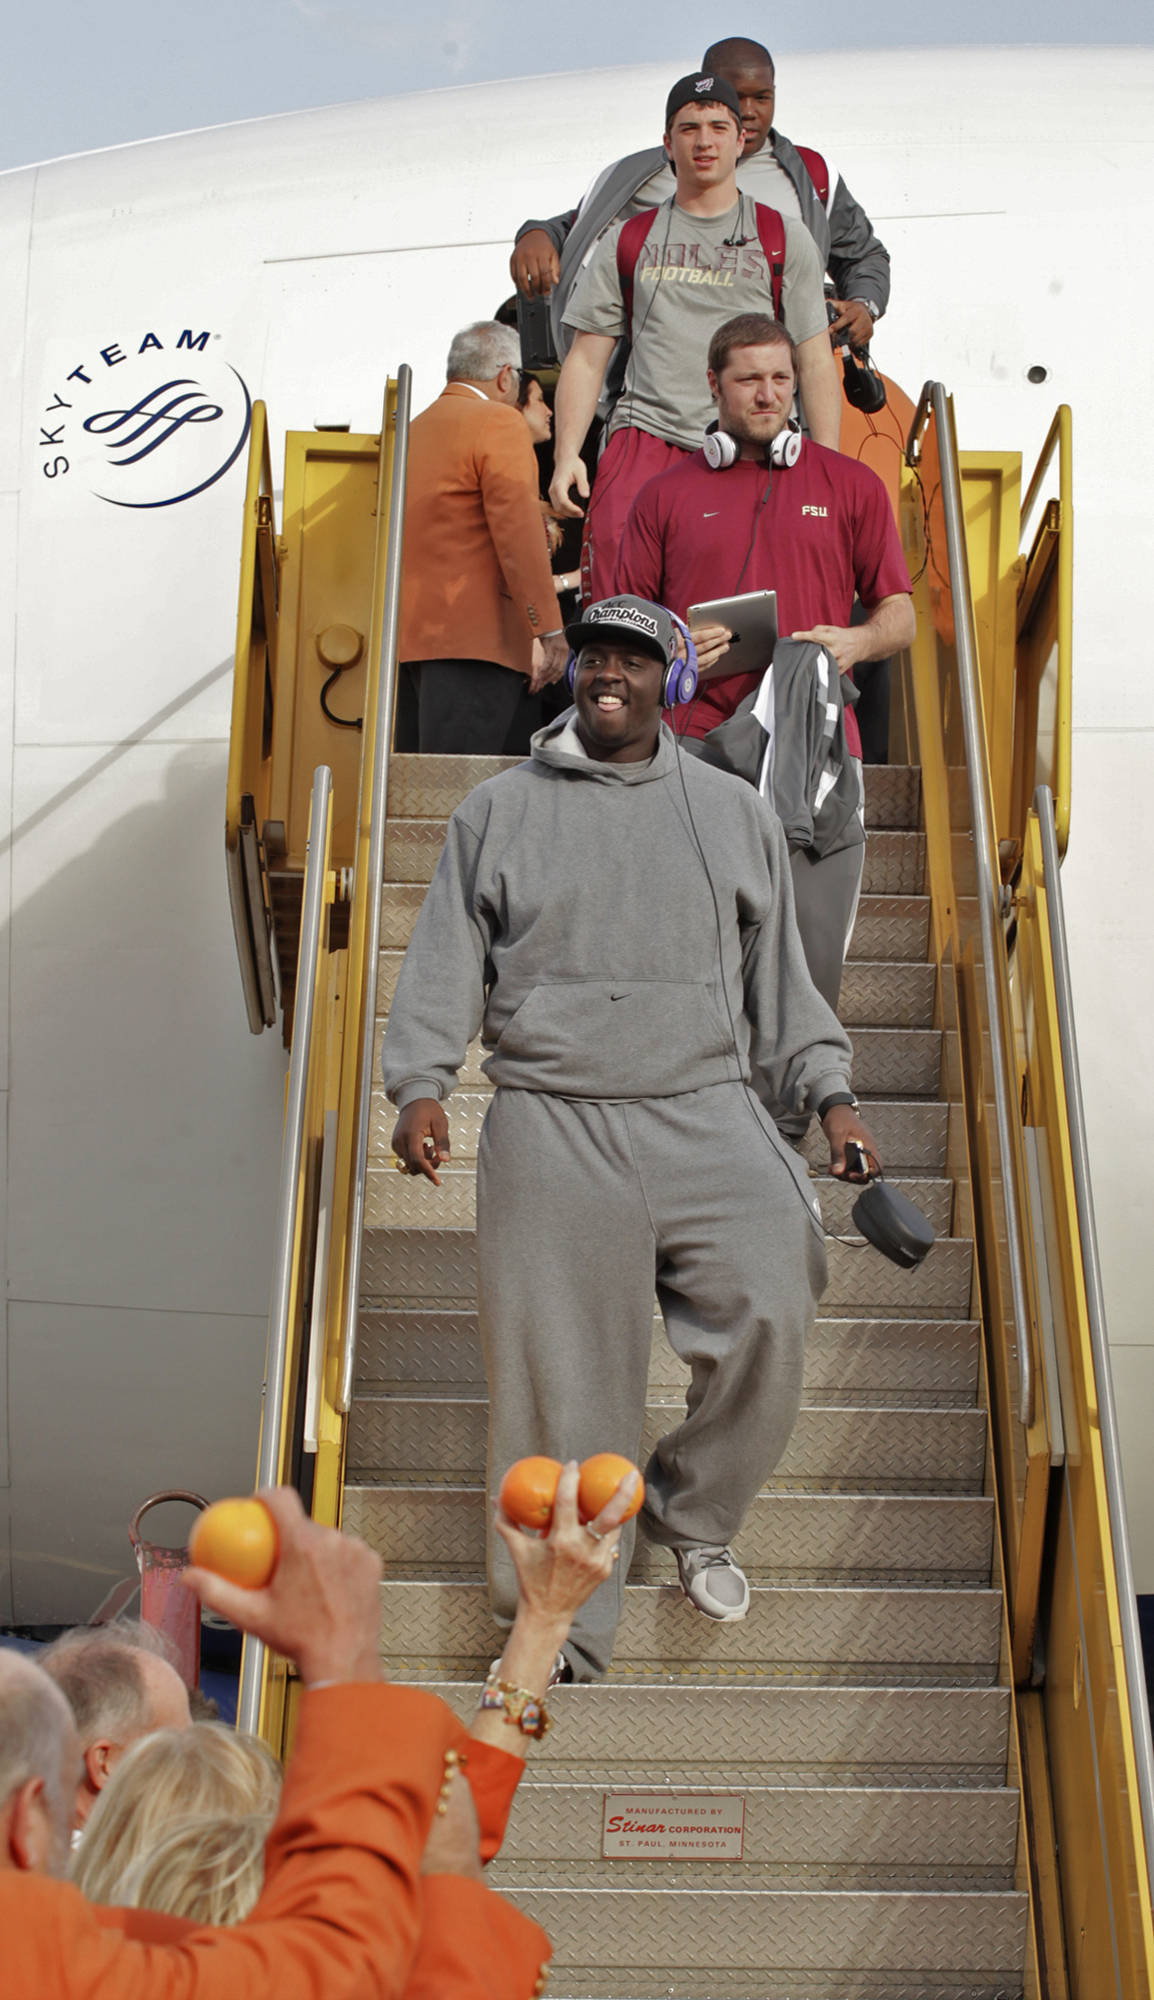 Florida State's Cameron Erving, center, smiles as he leads other players down the stairs while deplaning and being welcome by Orange Bowl Committee members, Wednesday, Dec. 26, 2012, after the Seminoles arrived in Fort Lauderdale, Fla., for the Orange Bowl Classic NCAA college football game against Northern Illinois in Miami, Jan. 1, 2013. (AP Photo/The Miami Herald, Carl Juste)